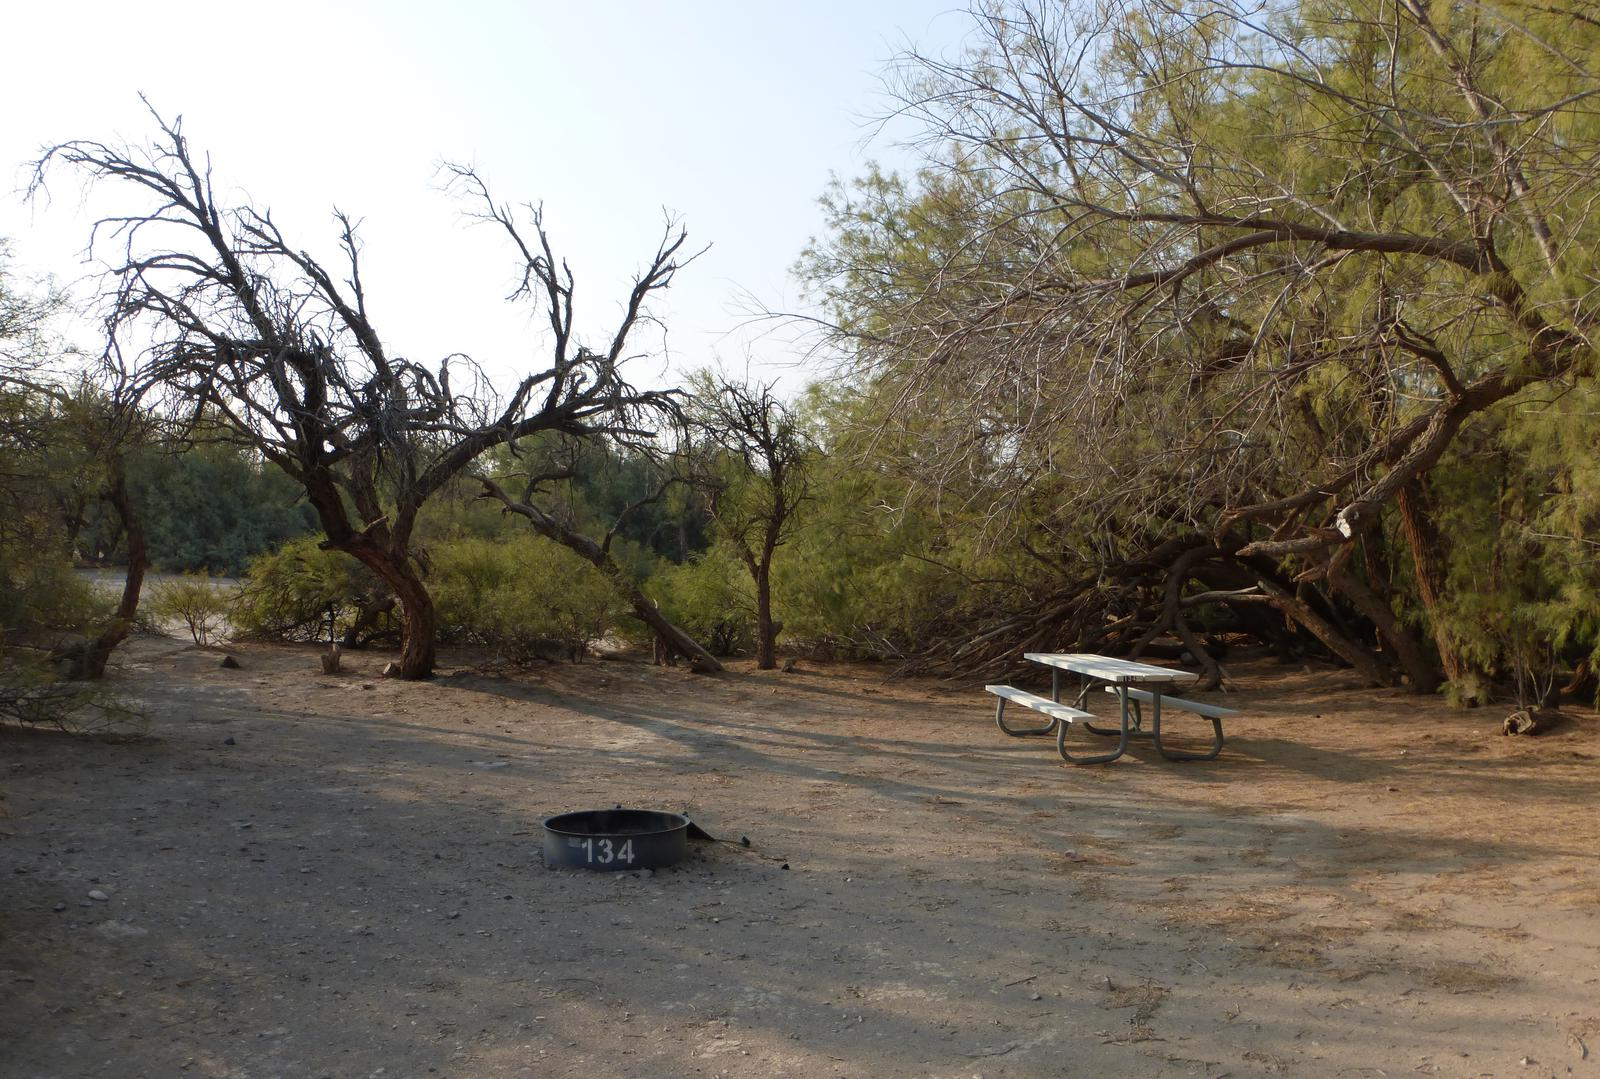 Tent only walk in site #134.  No campervans, RV's, or pop up tents.  One firepit with grate and one picnic table.  No utilities.